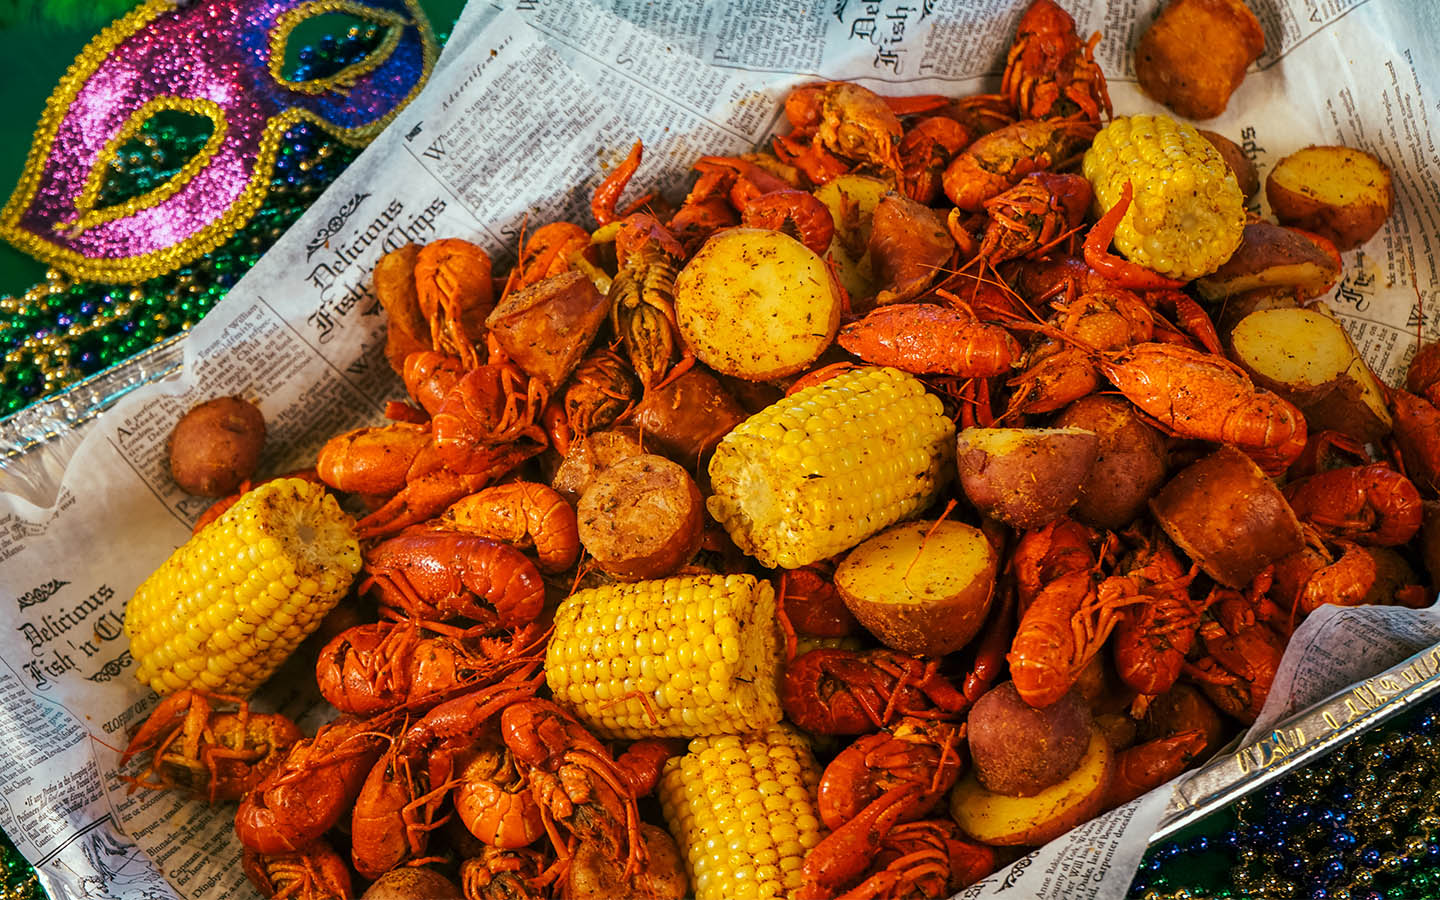 Behind The Thrills | It's a crawfish boil! Universal rolls out a